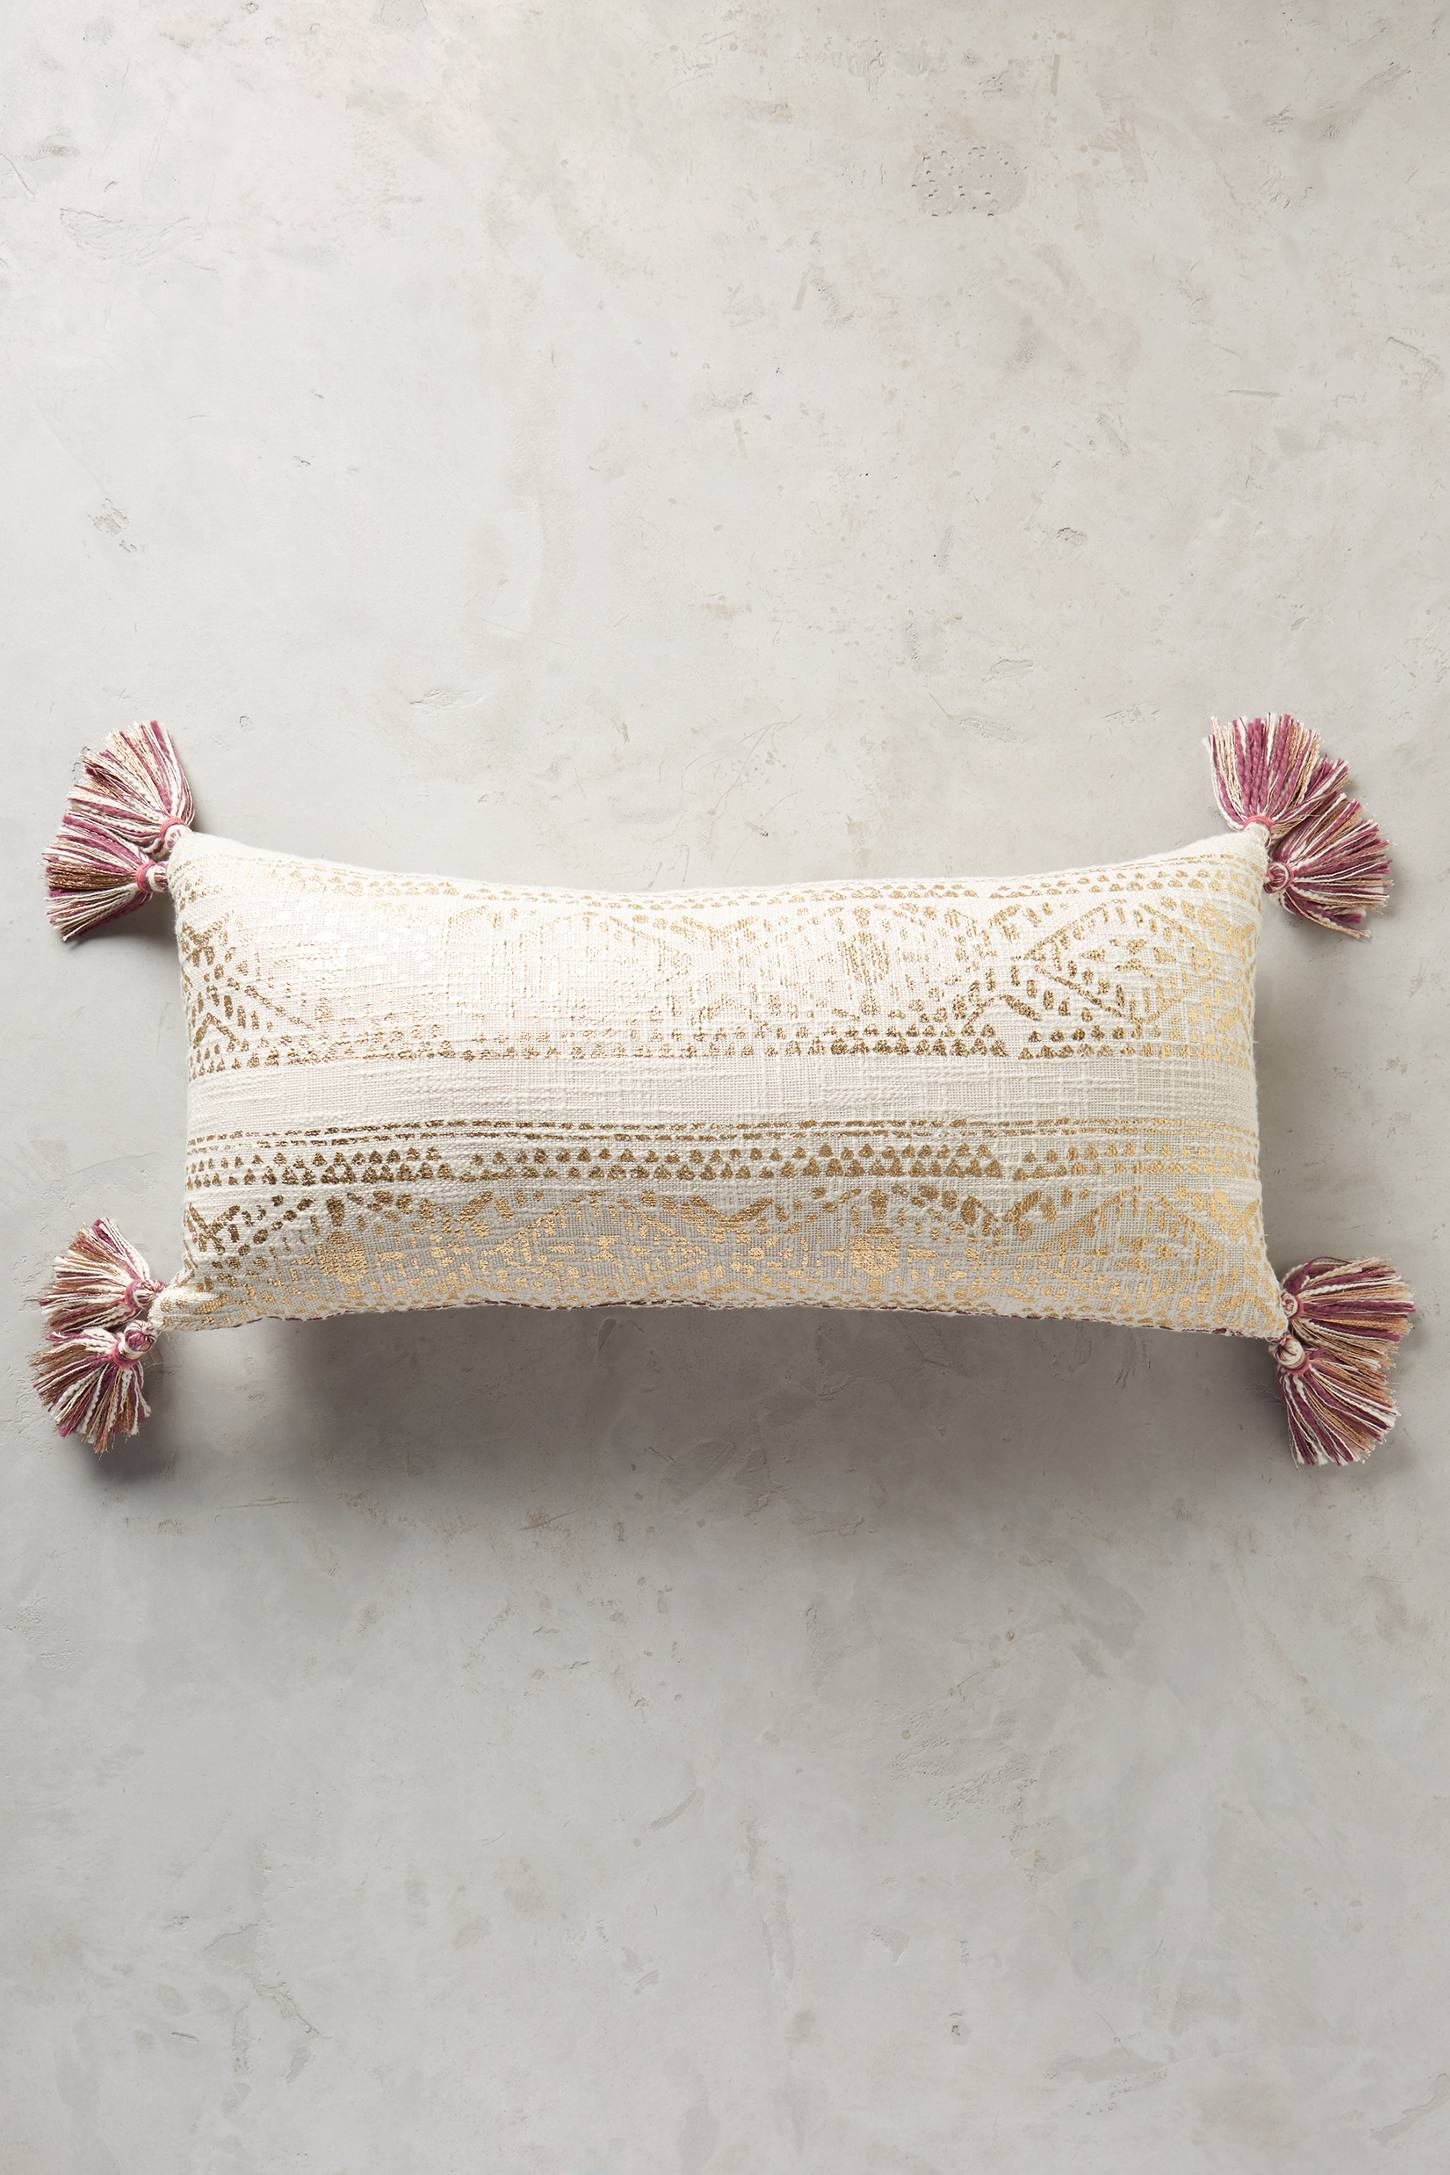 Slide View: 10: Tasseled Pointilliste Pillow